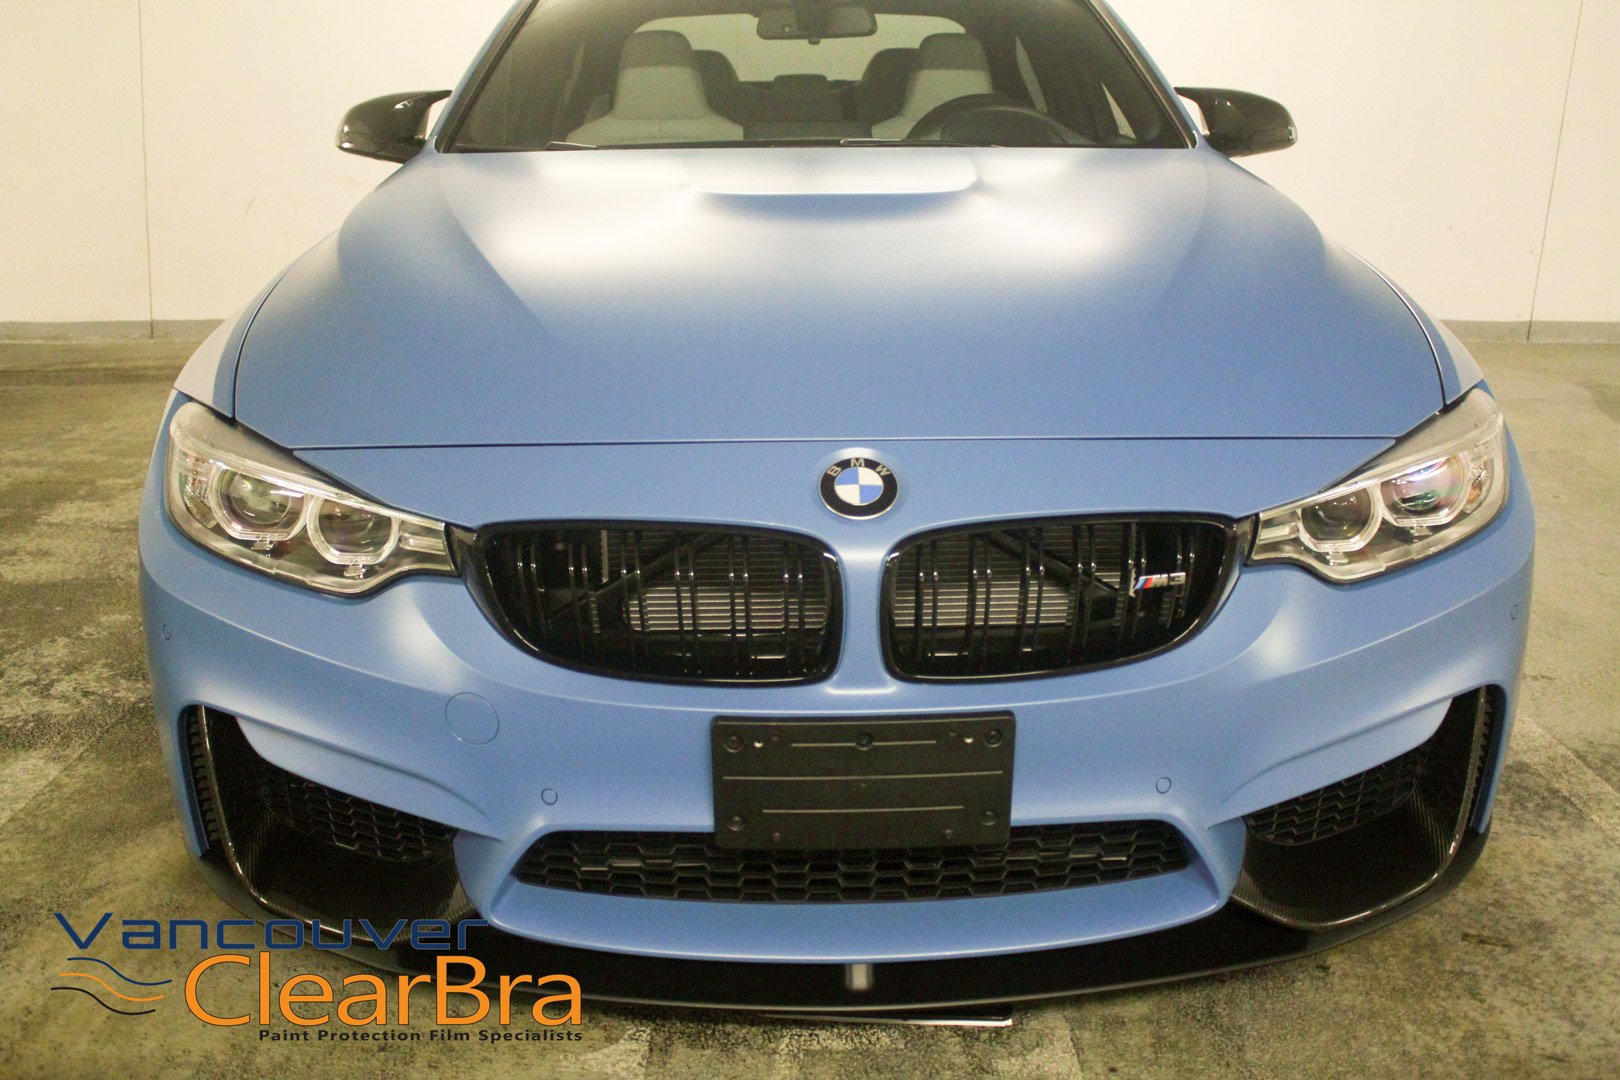 bmw film Adhesive film hood center right bmw buy online, 51147212788 best price & shipping by car parts, accessories shop сars245 auto parts catalog.